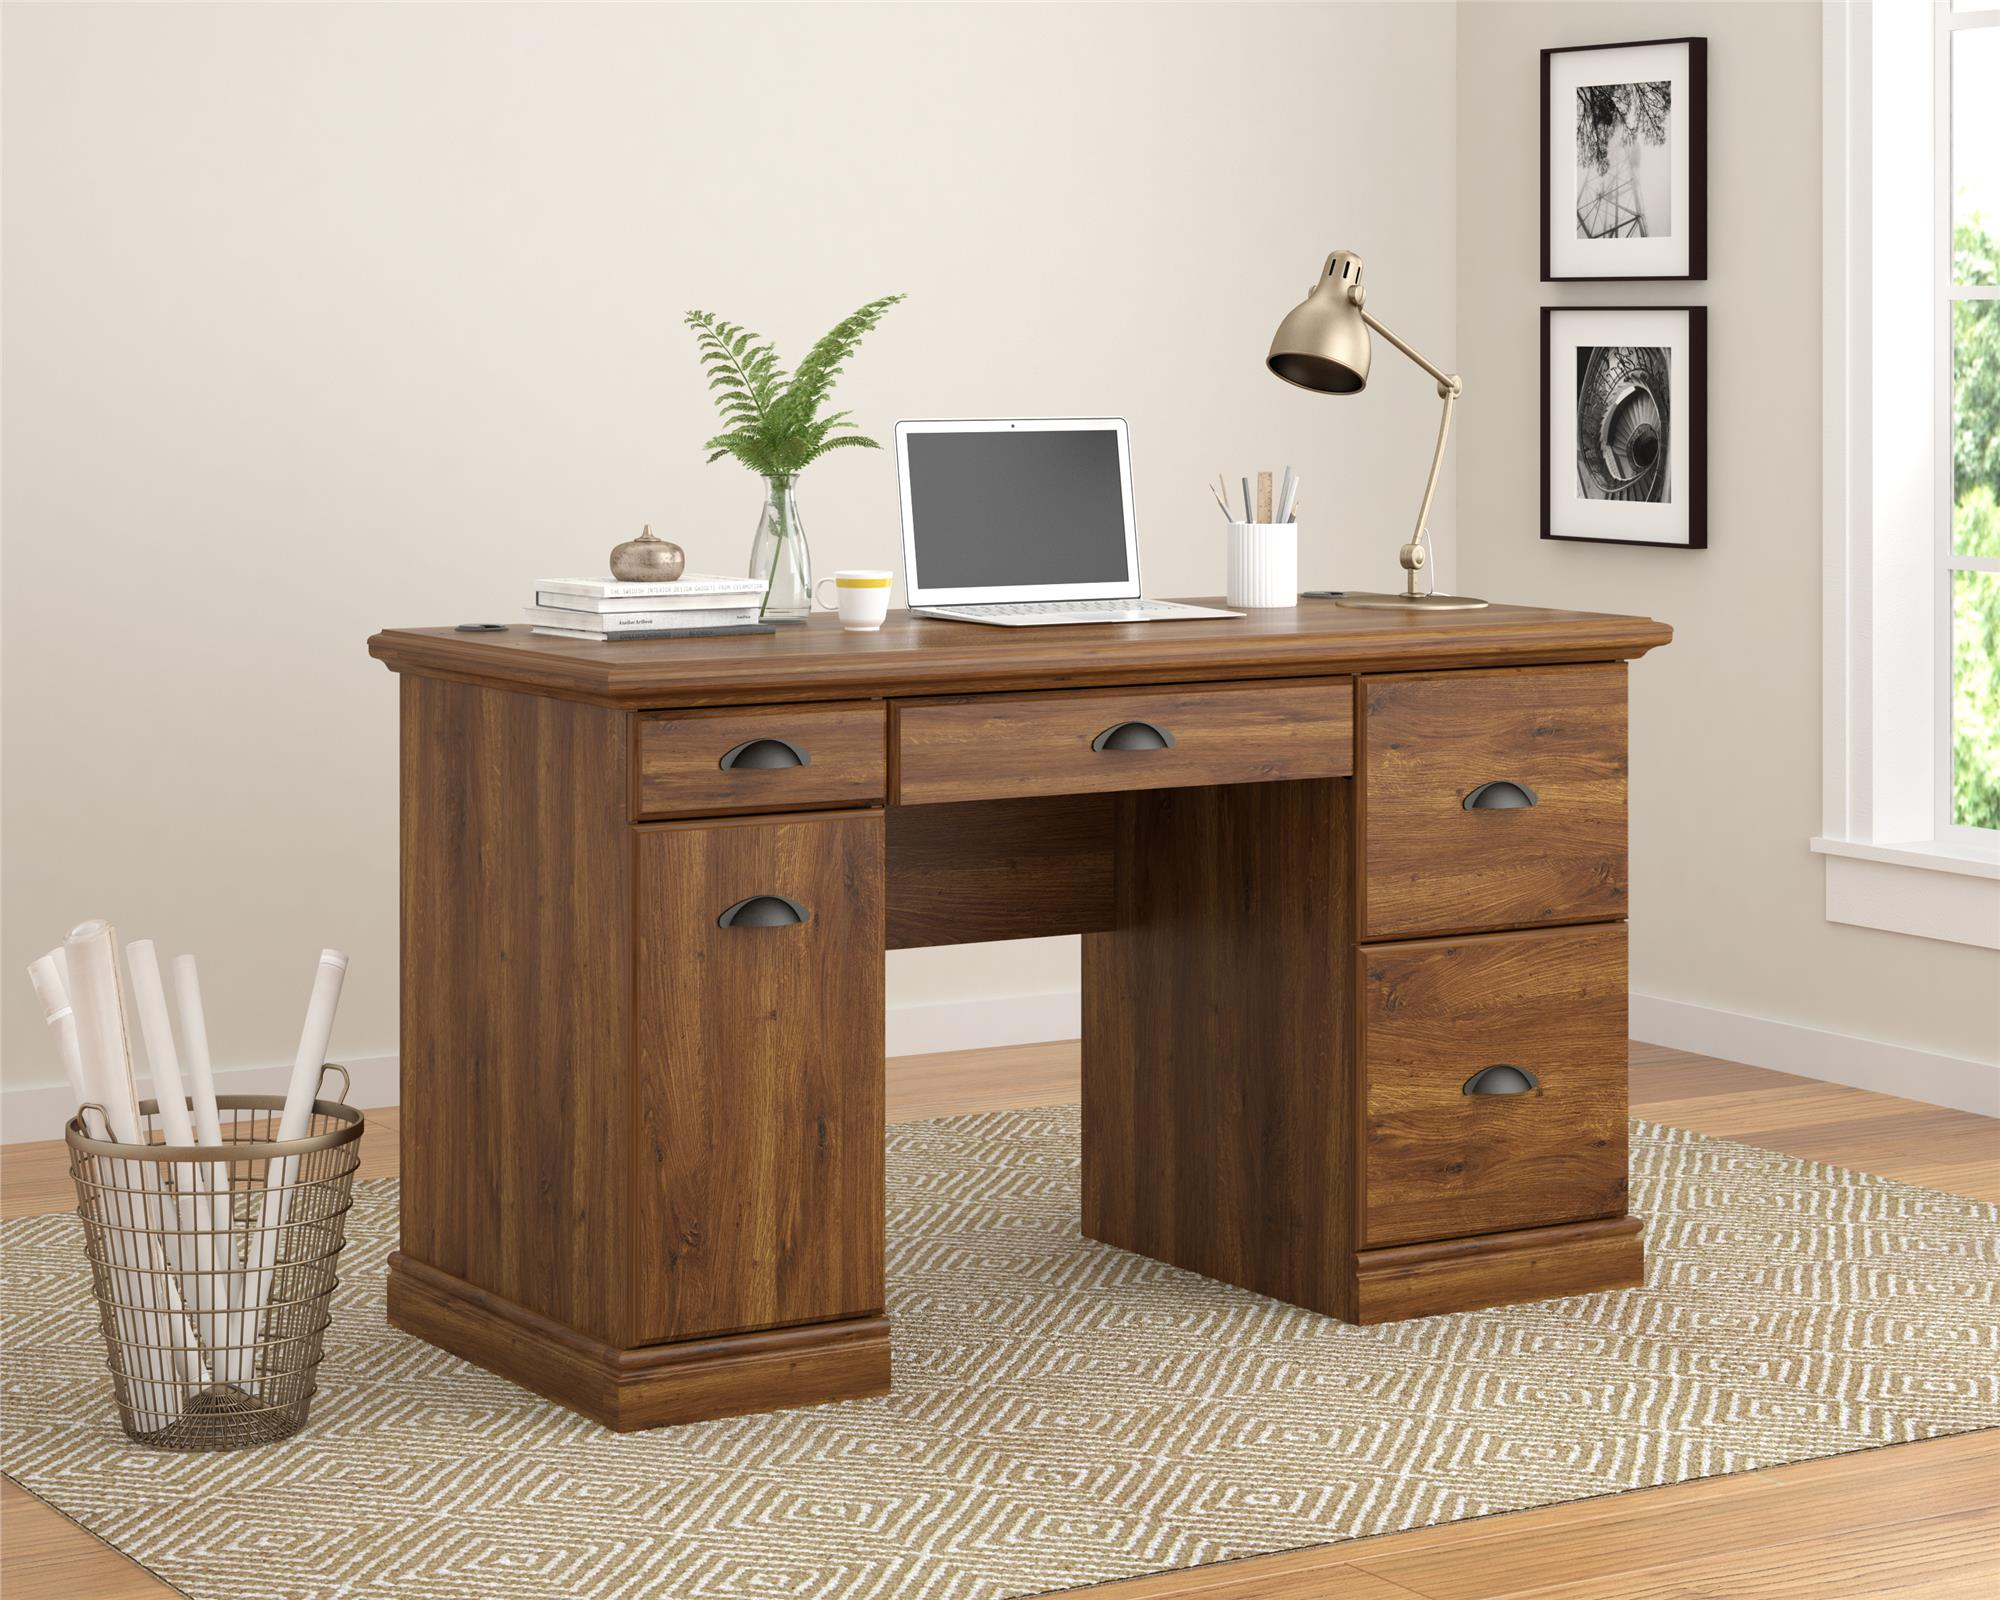 Better Homes And Gardens Computer Desk, Brown Oak Image 4 Of 4